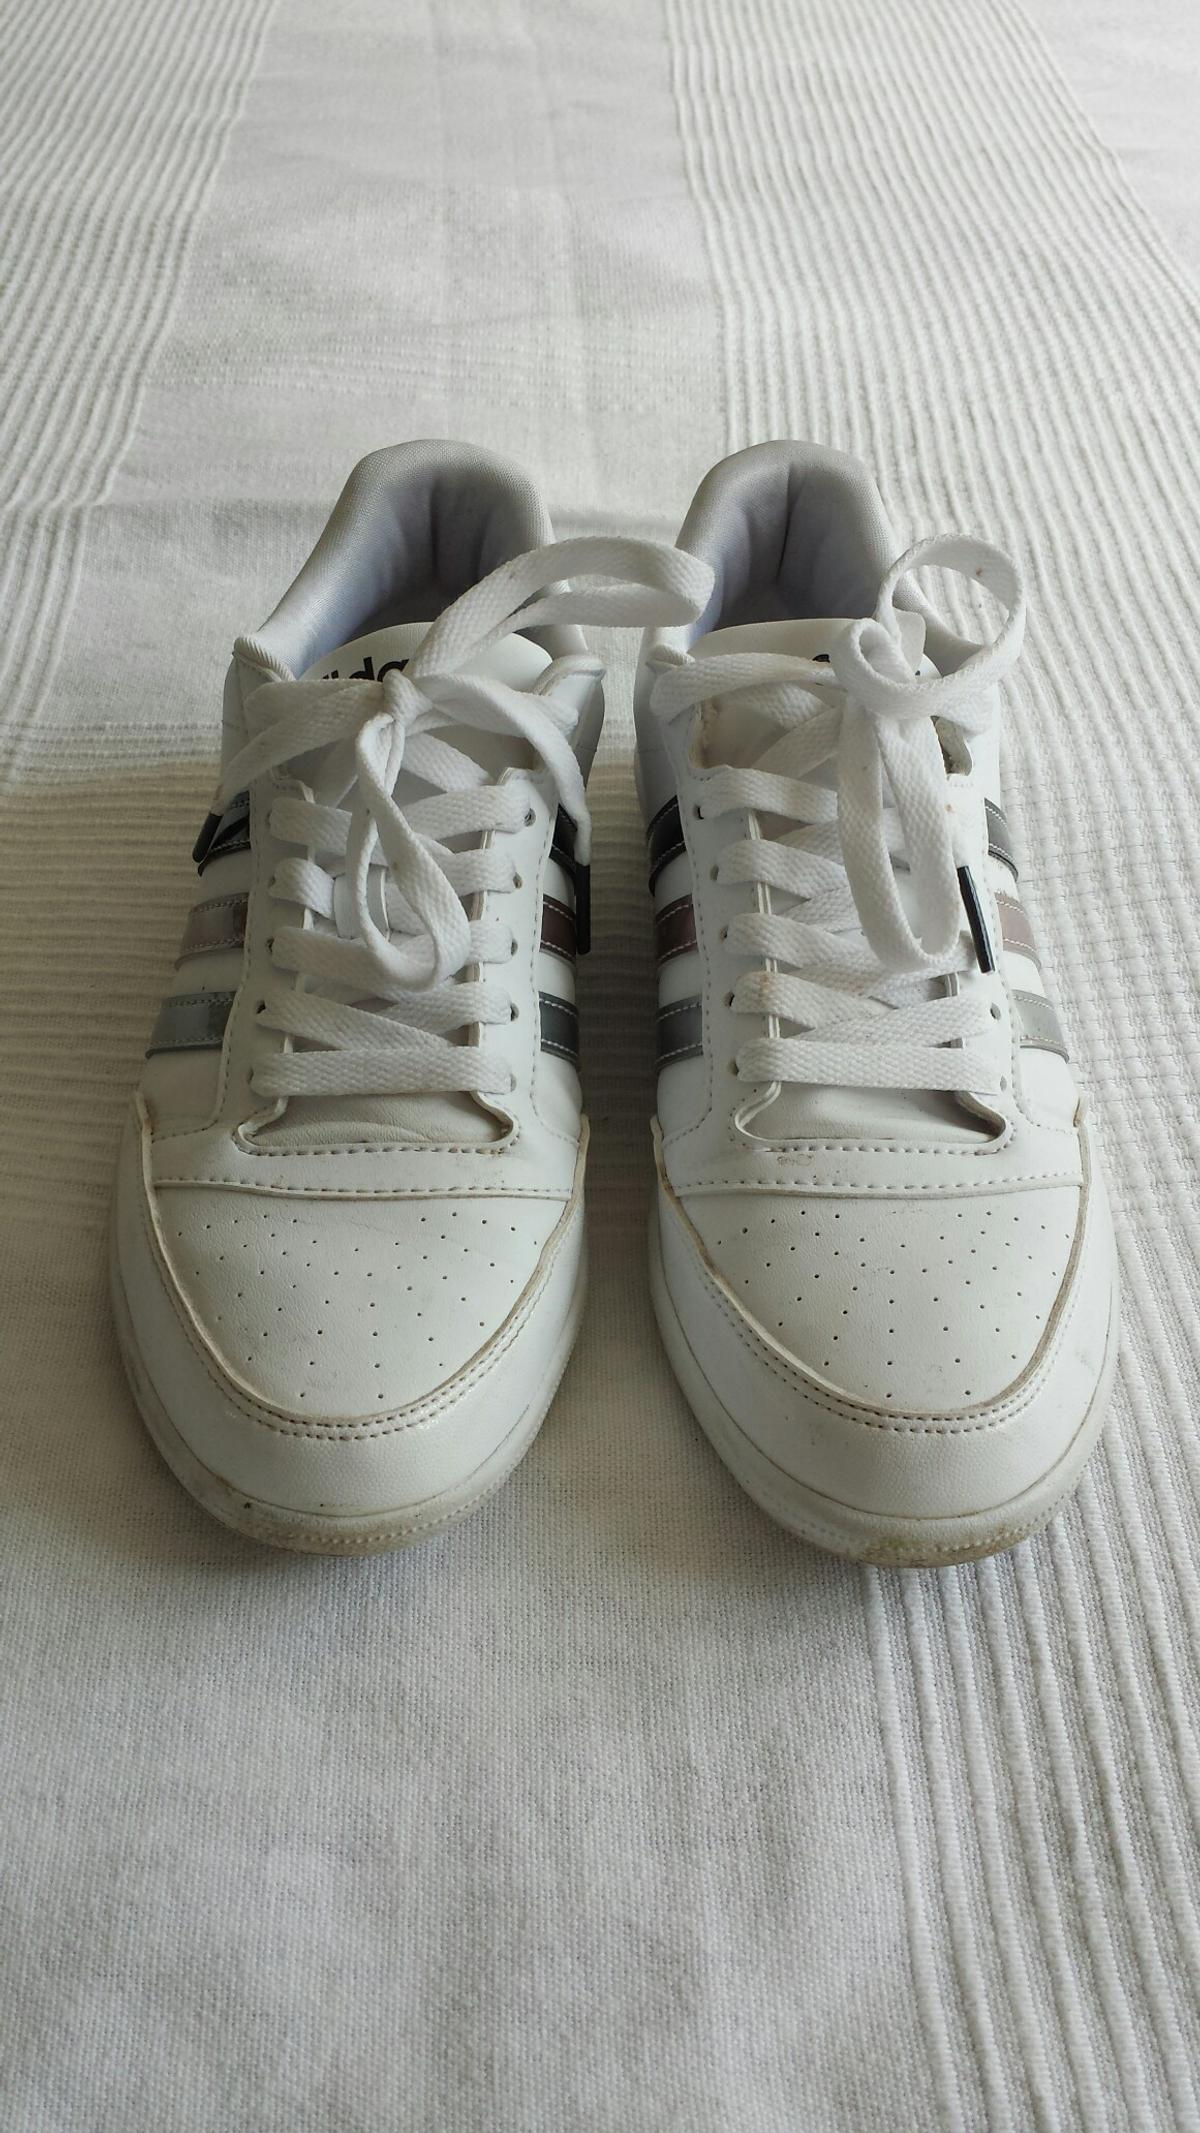 948d6bcd473e7 Adidas Sneakers Damenschuhe 38,5 in 1090 Wien for €10.00 for sale ...